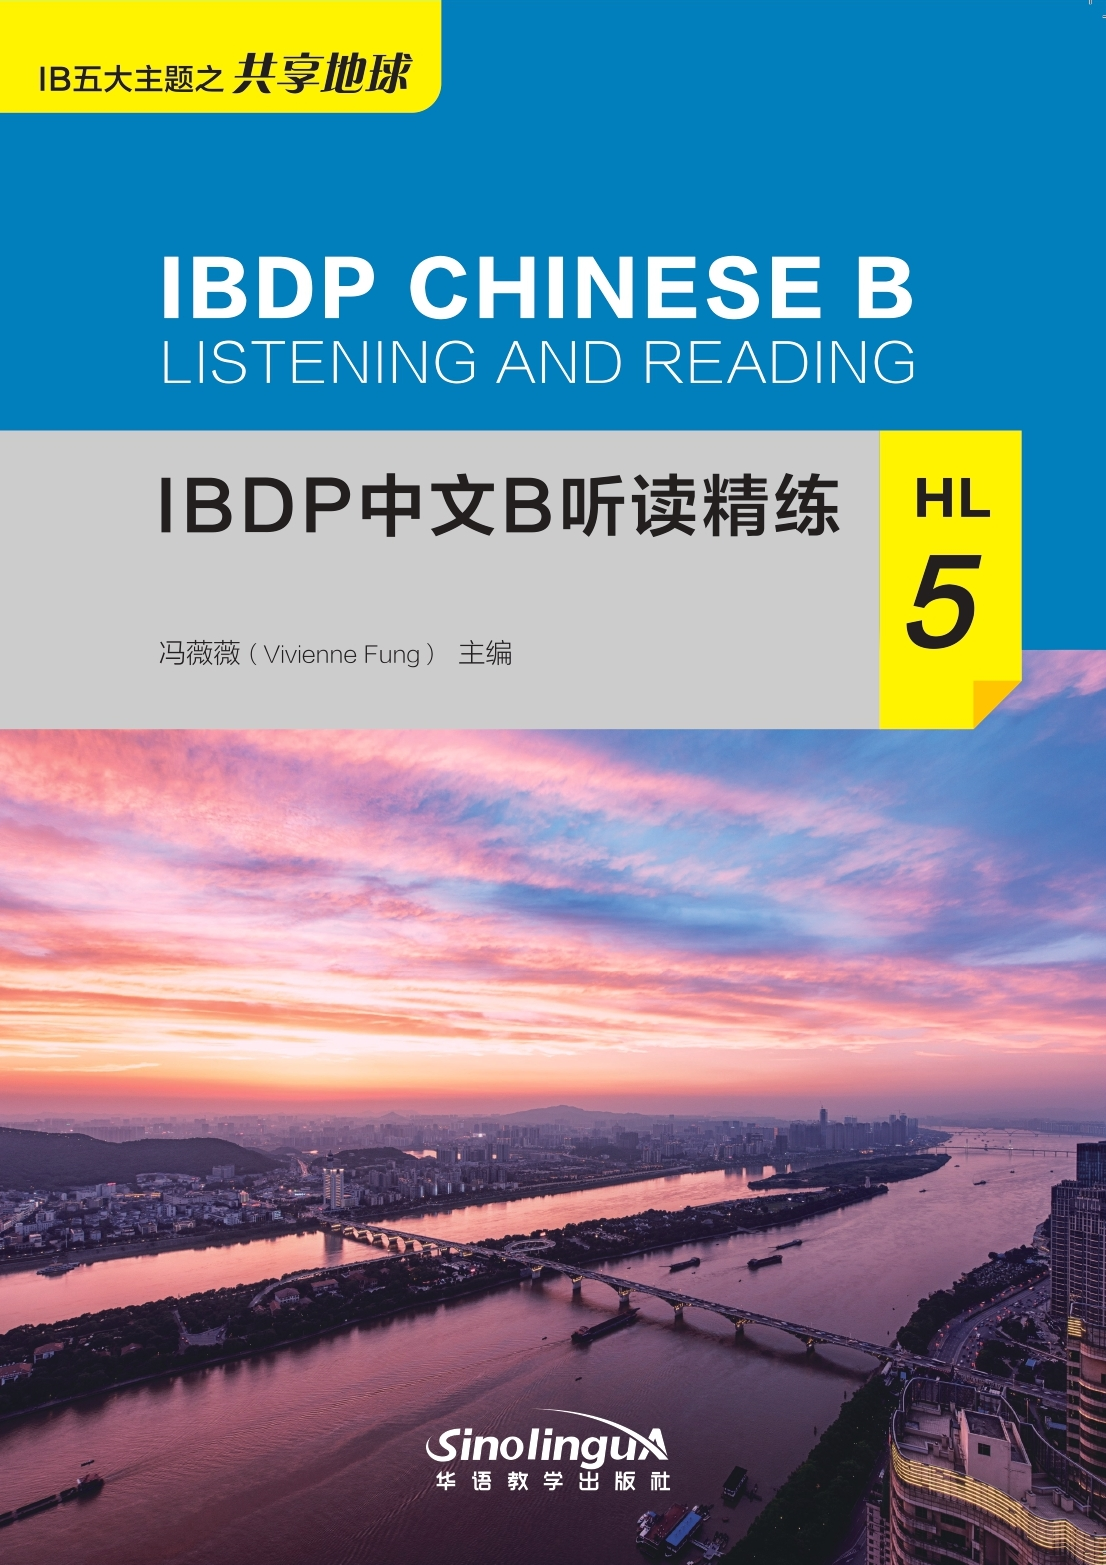 IBDP中文B听读精练HL 5  IBDP Chinese B Listening and Reading HL 5